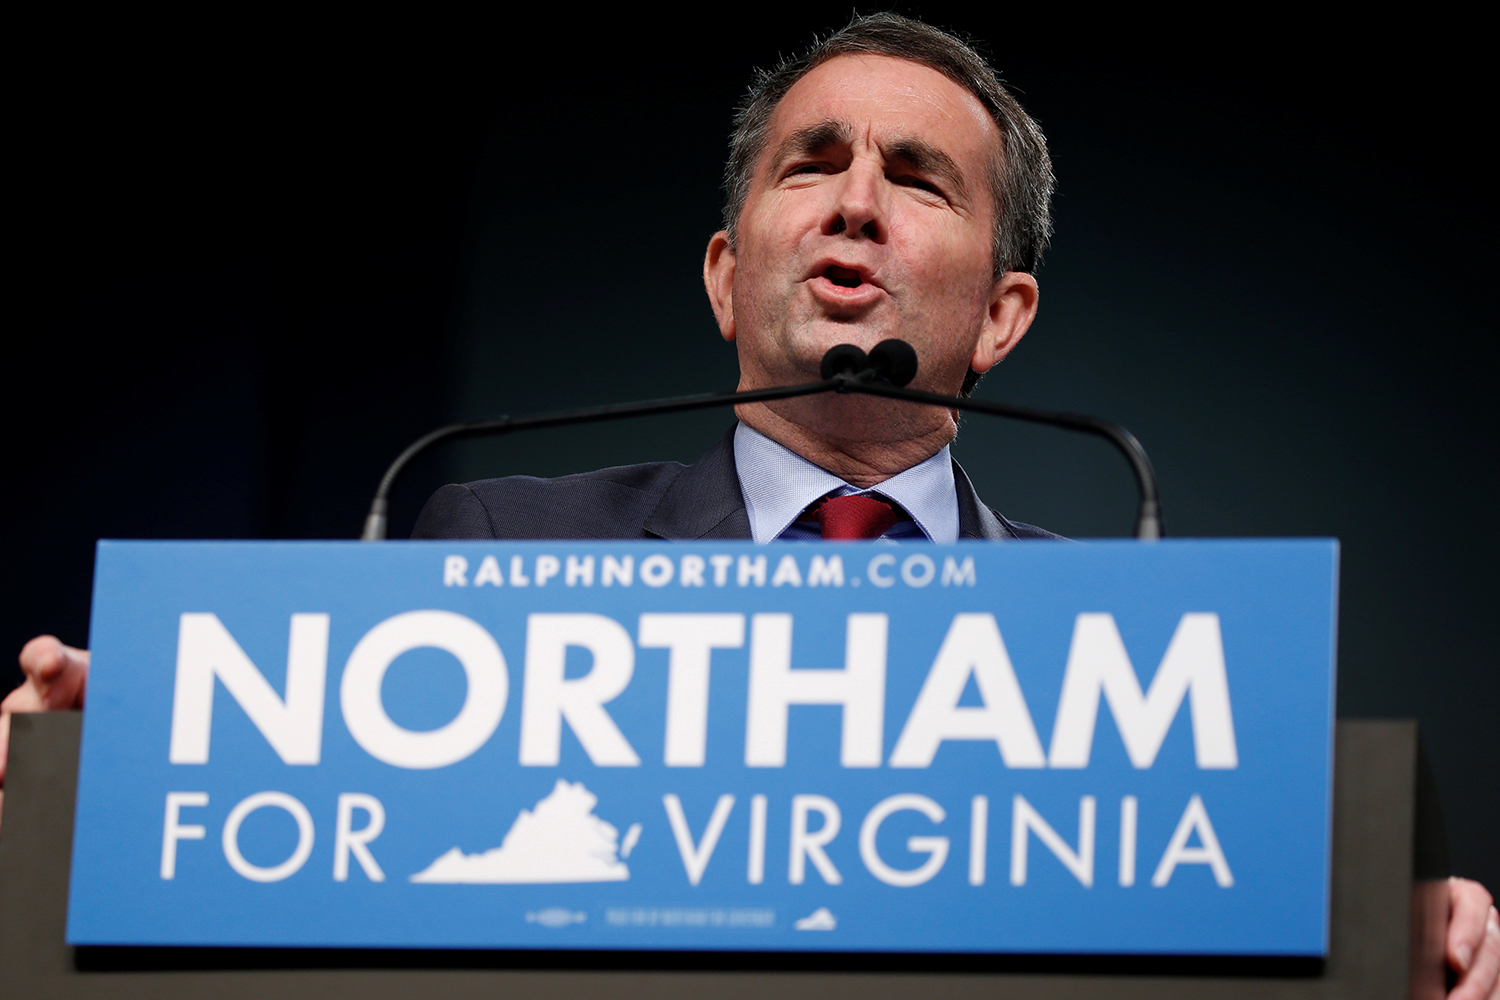 Northam yearbook photo shows men in blackface, KKK robe